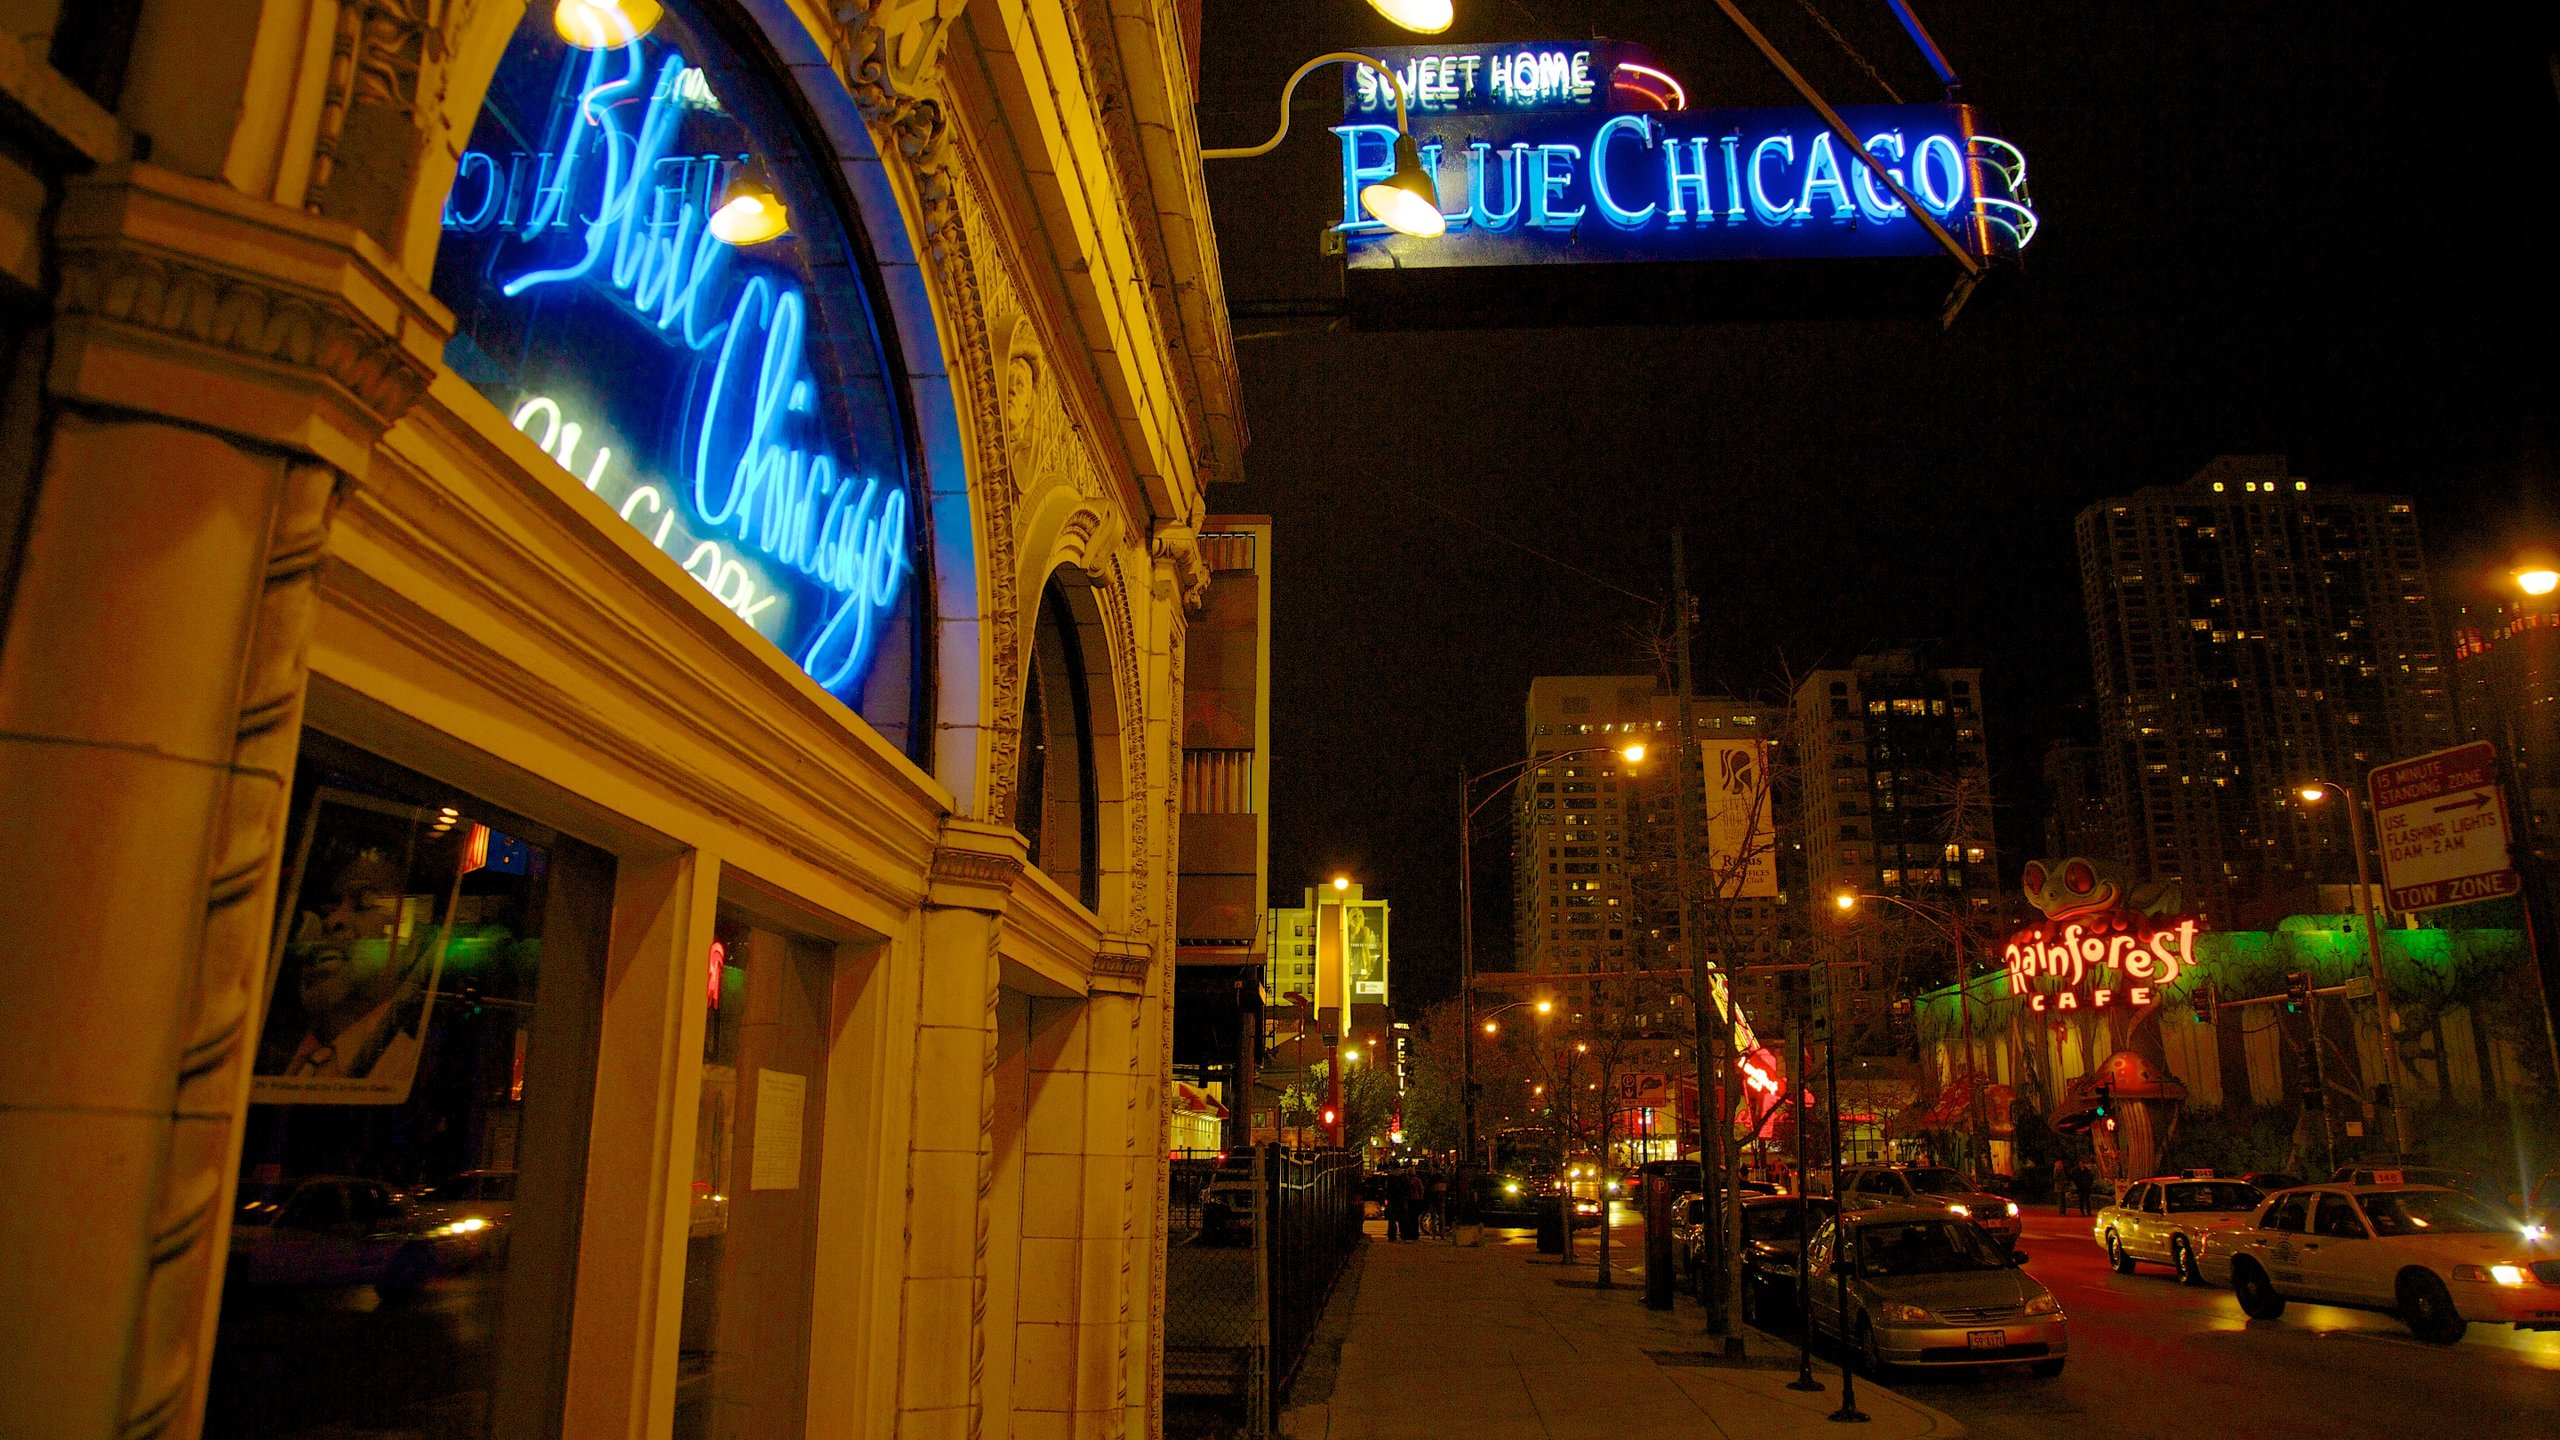 During your visit to Chicago, you can find the perfect gifts to bring home at Michigan Avenue. Amble around this vibrant area's riverfront and enjoy its top-notch restaurants.